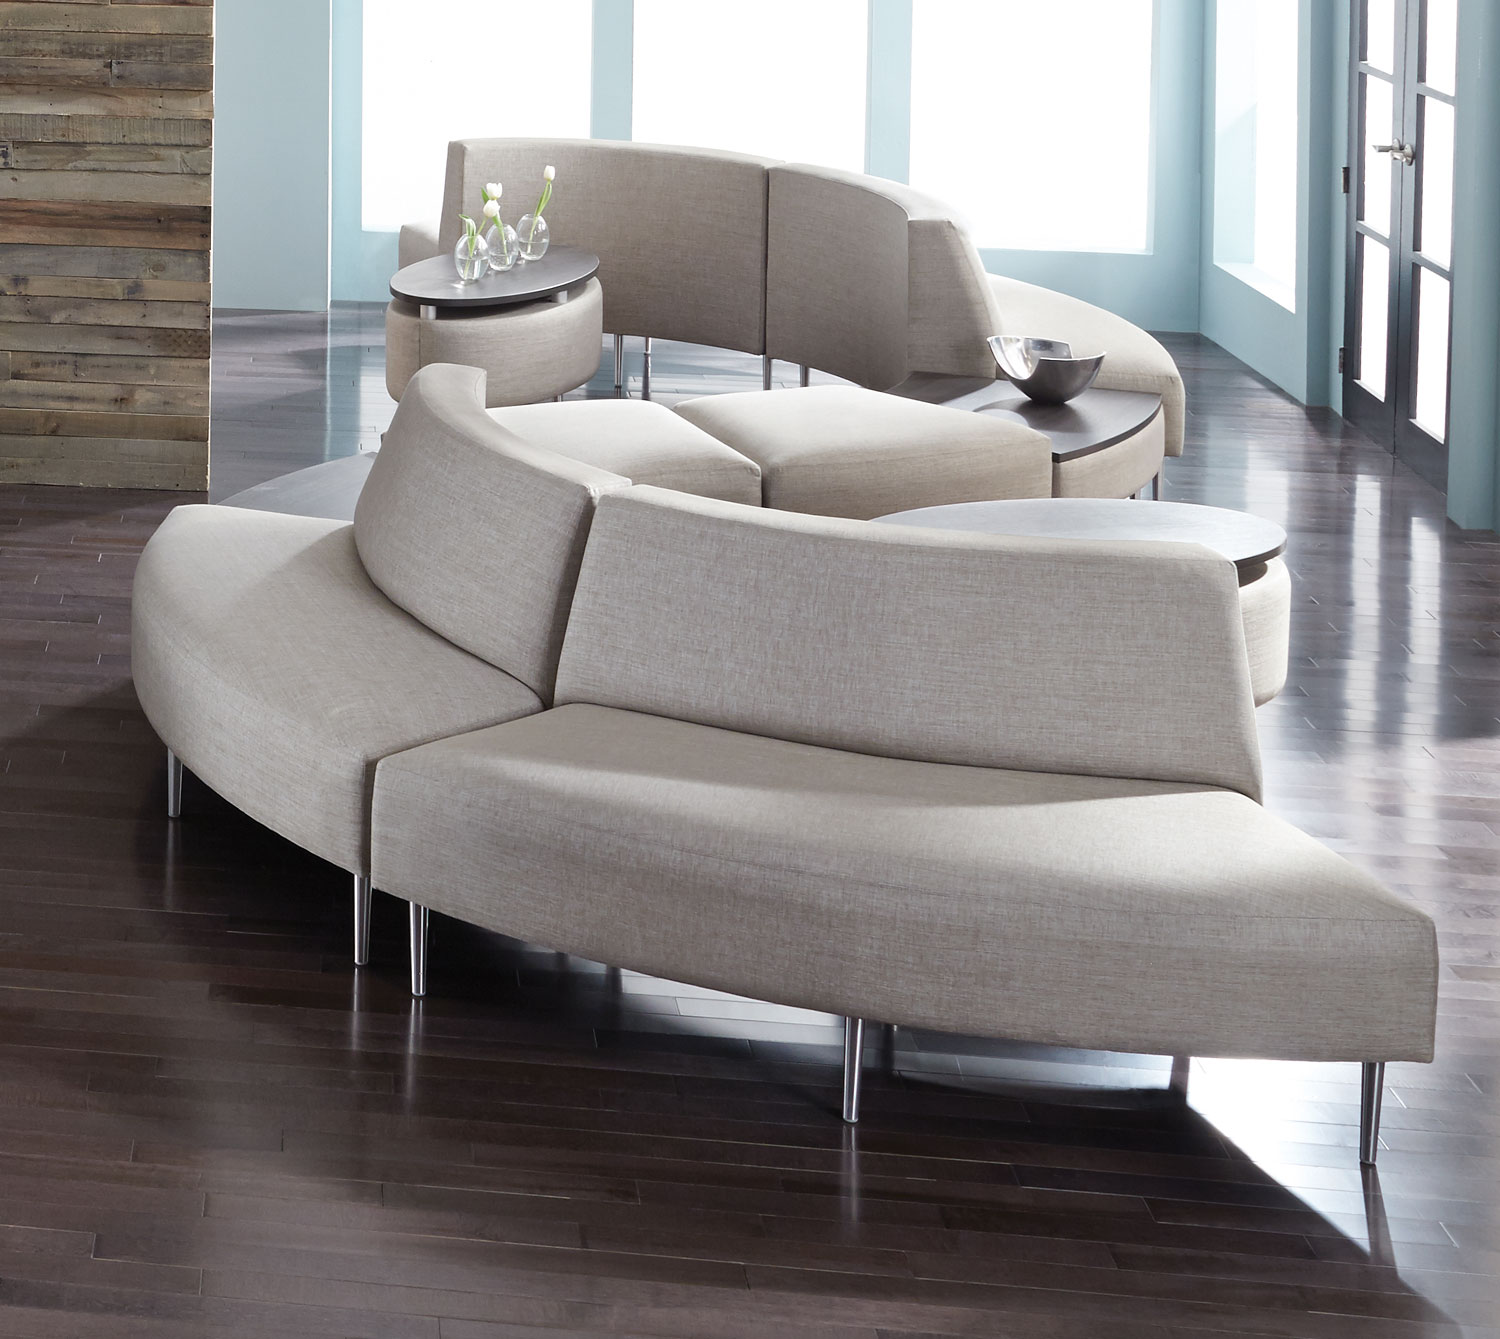 Charmant Eve Lounge And Reception Seating From HPFi   High Point Furniture Industries